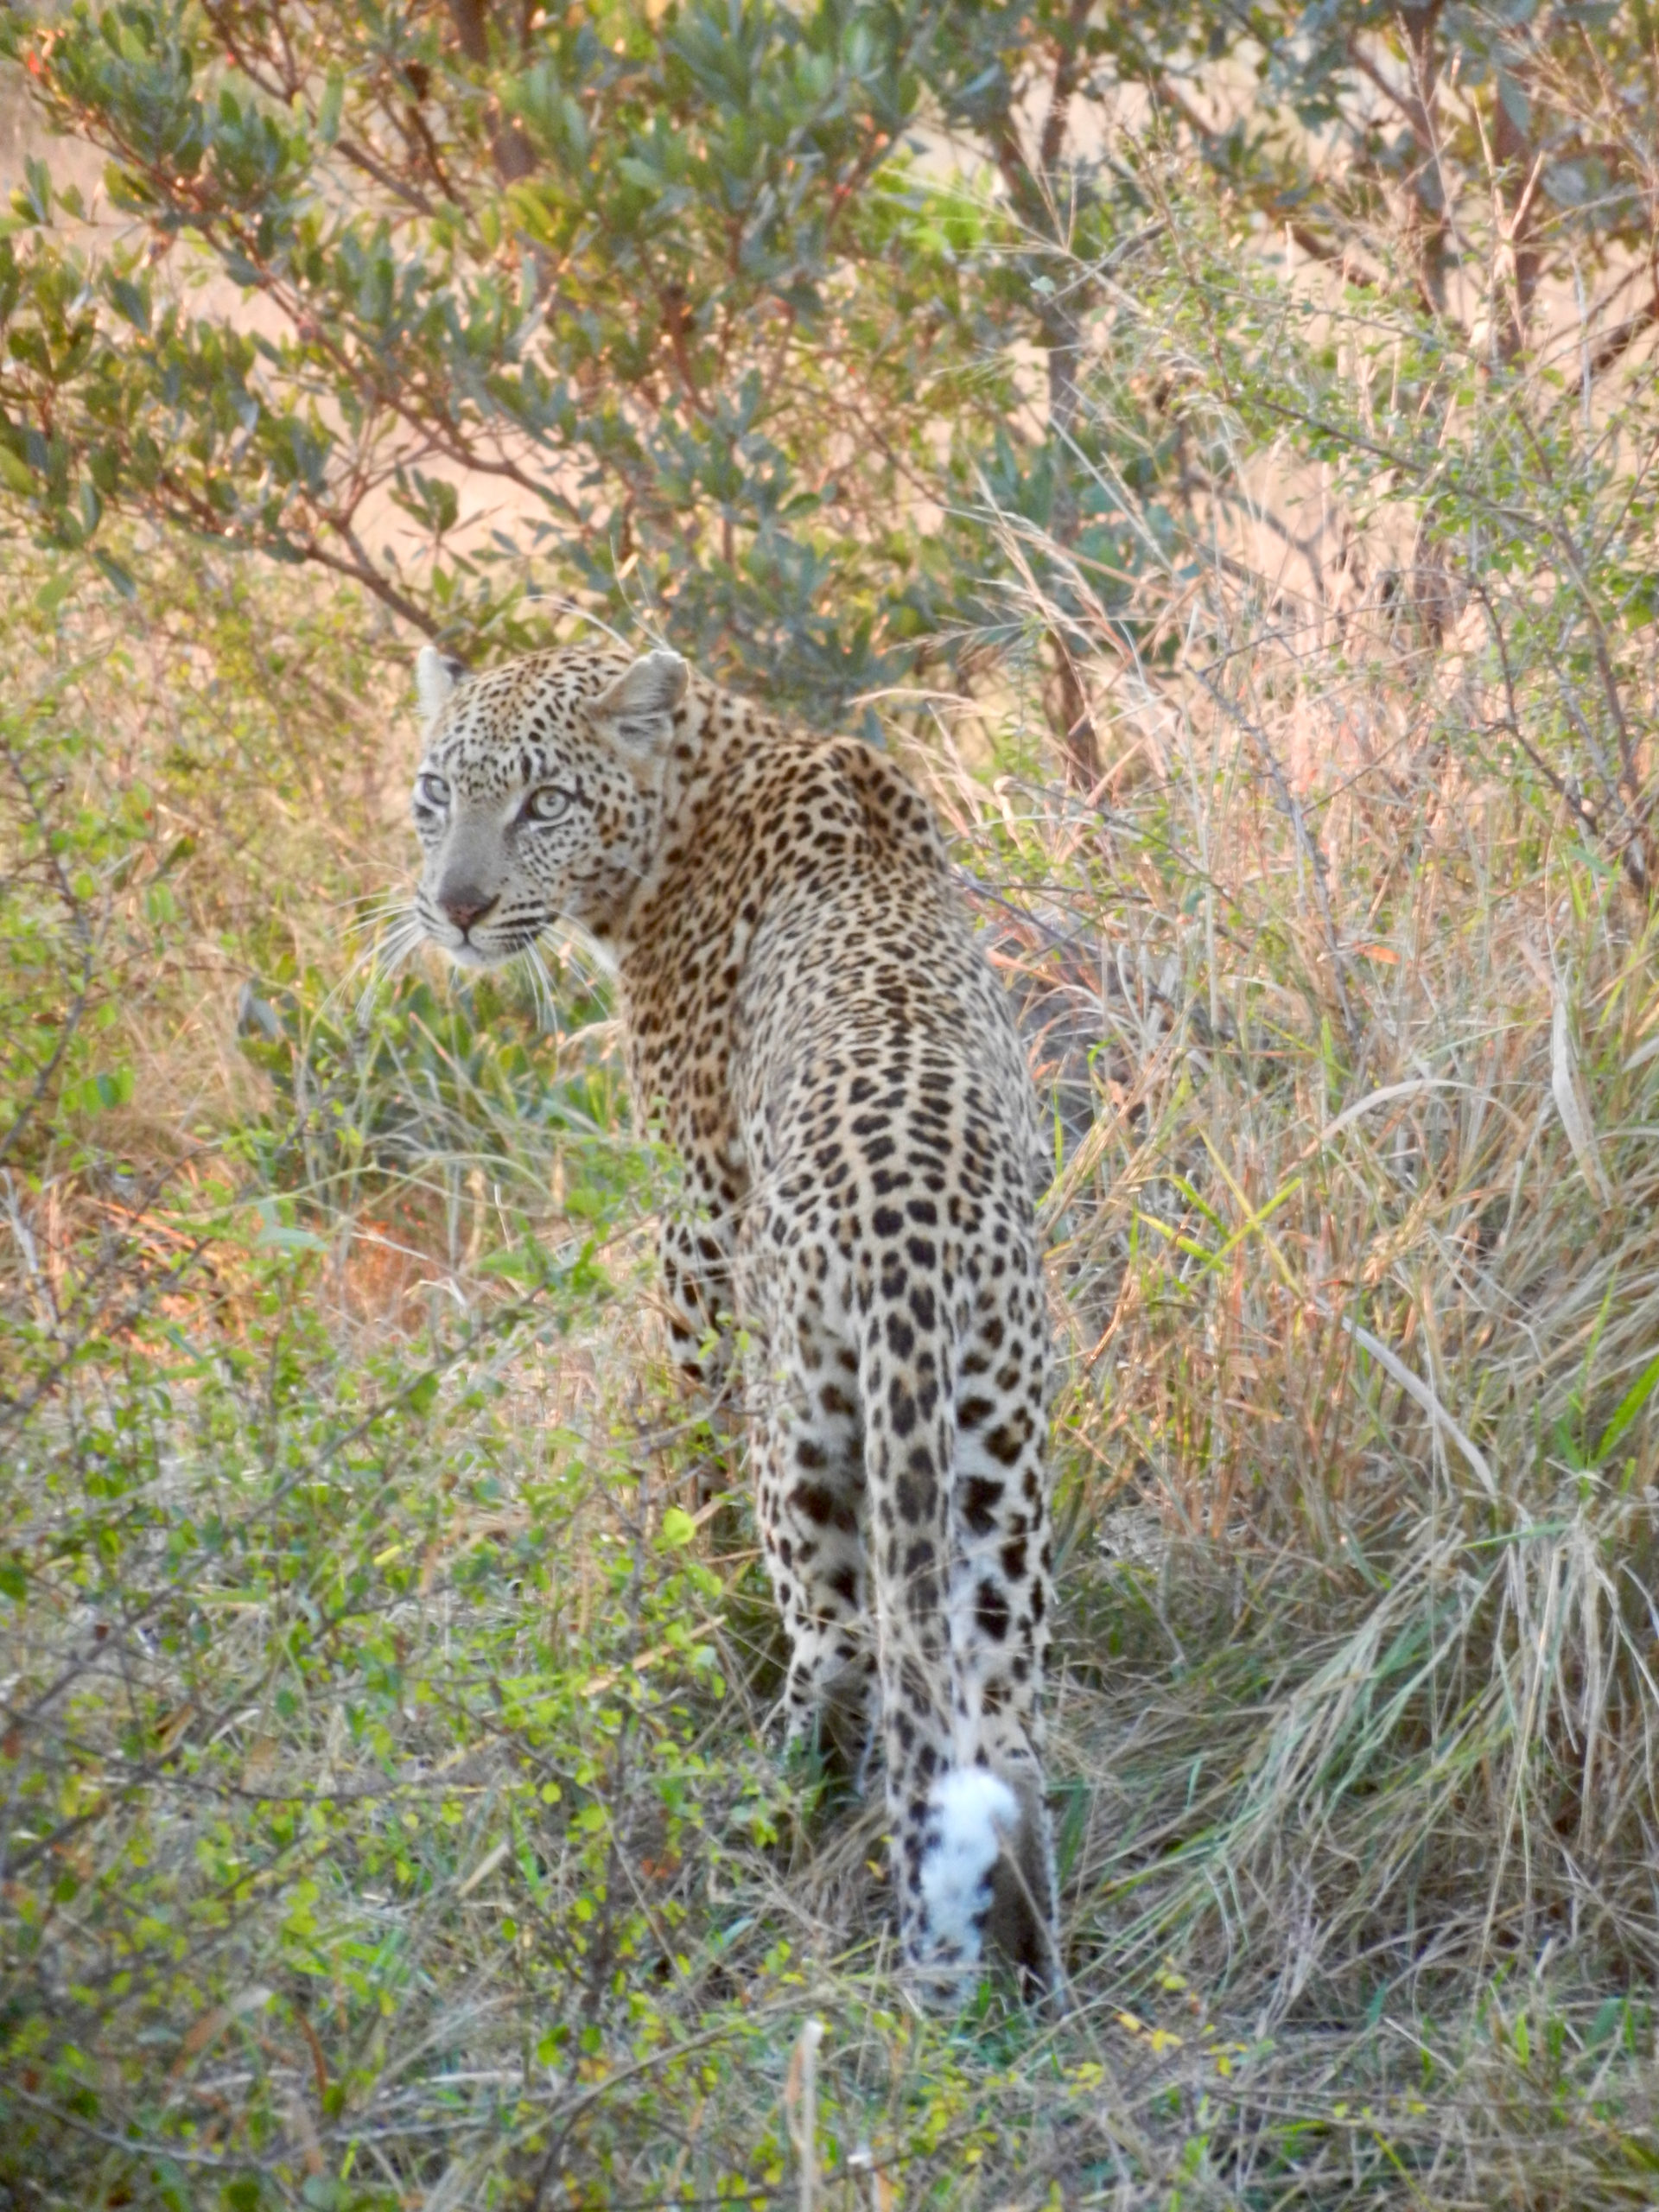 Cheetah checking us out in Kruger National Park, South Africa. Image Cindy Dykman